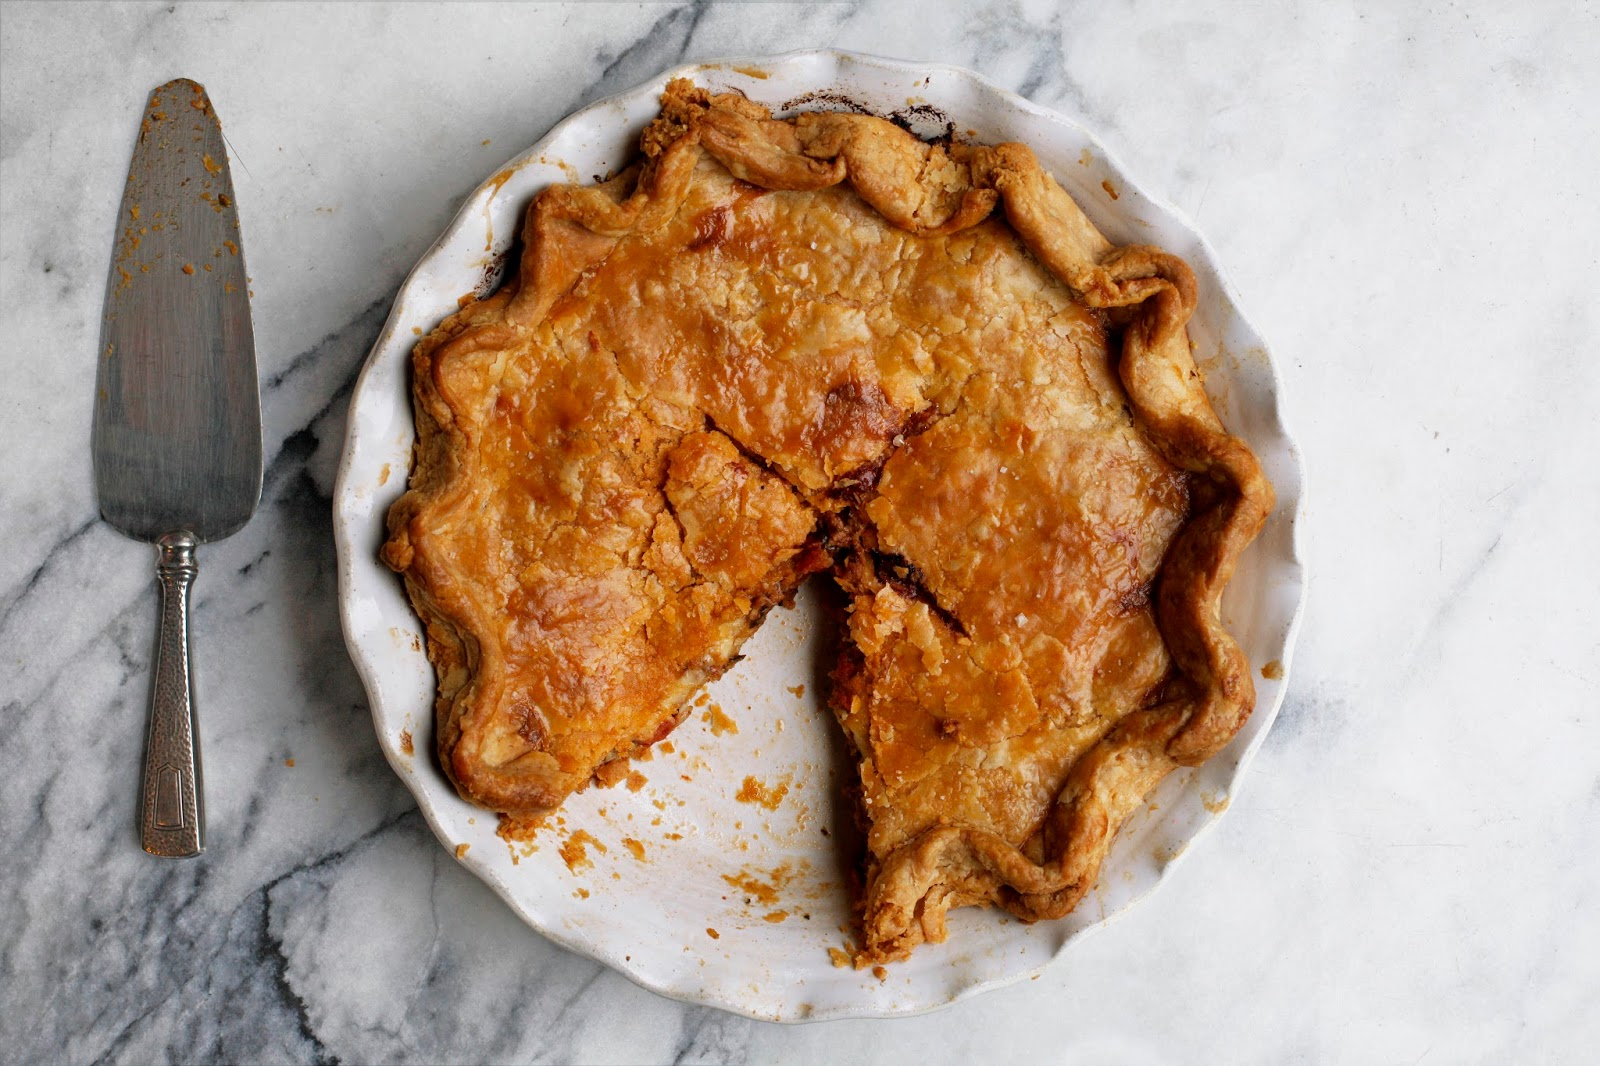 http://food52.com/recipes/32153-spiced-lamb-pie